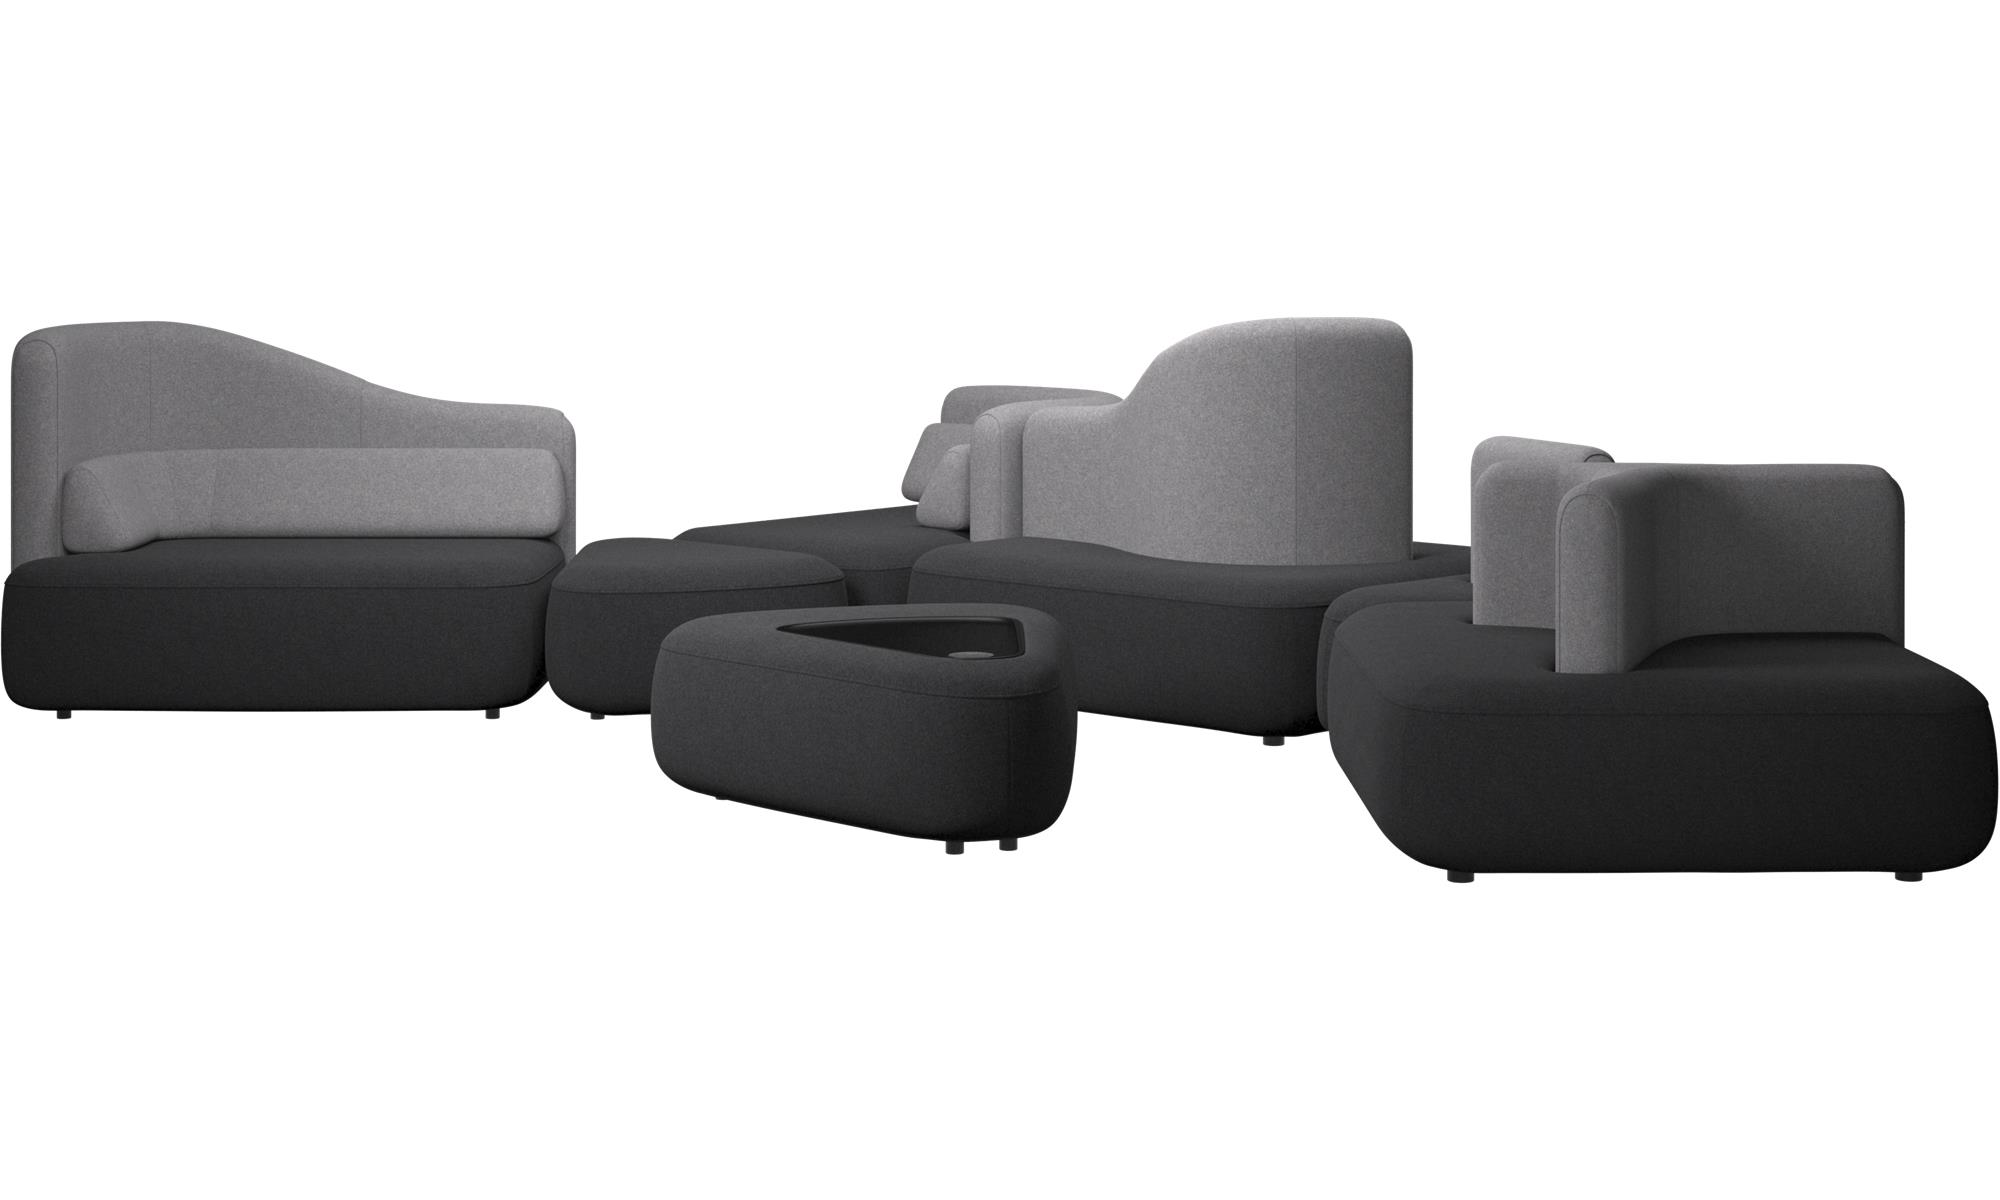 sofa ottawa modular sofas ottawa sofa boconcept thesofa. Black Bedroom Furniture Sets. Home Design Ideas